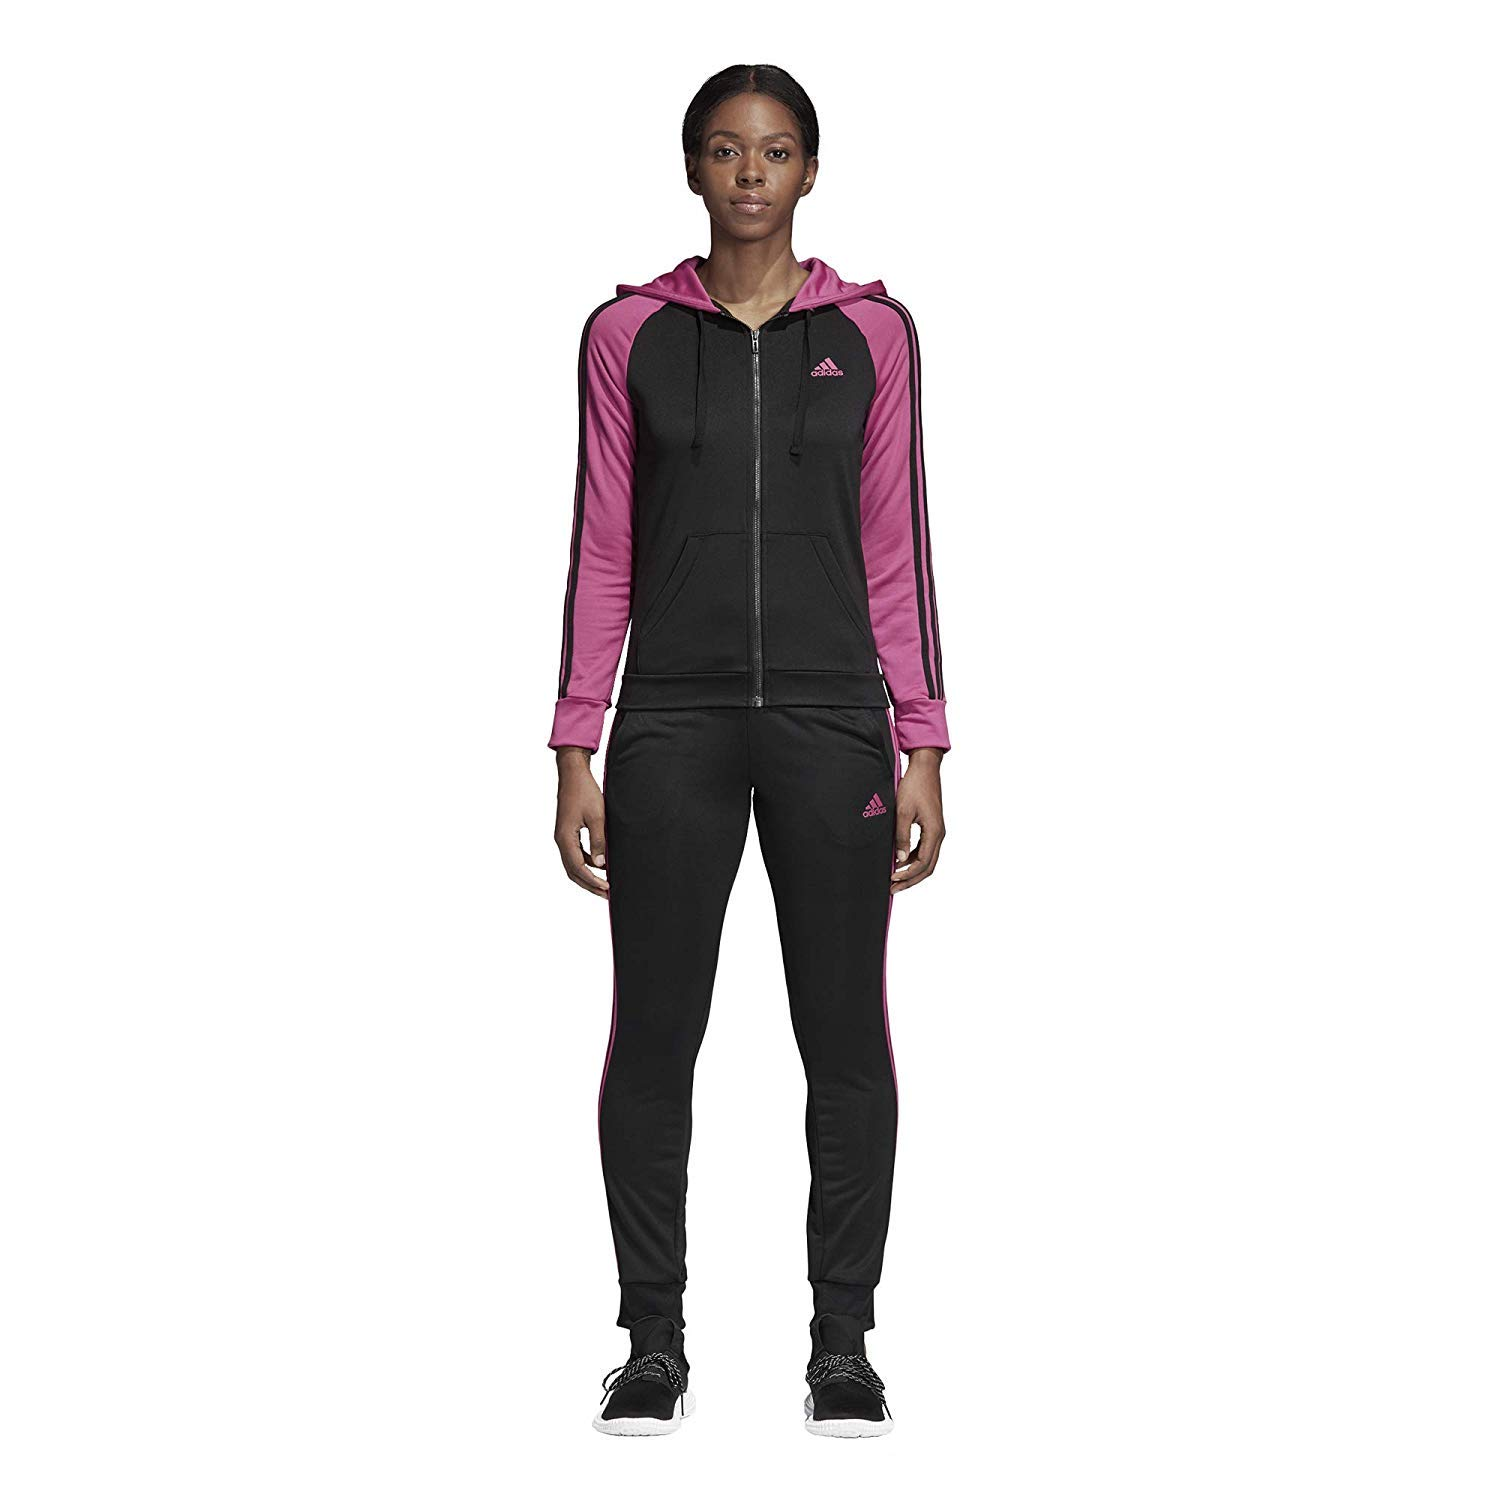 new product ab37b 11664 Adidas Women Track Suit Re-Focus Training 3-Stripes Black Gym Workout  CY3517 (XS)  Amazon.ca  Clothing   Accessories